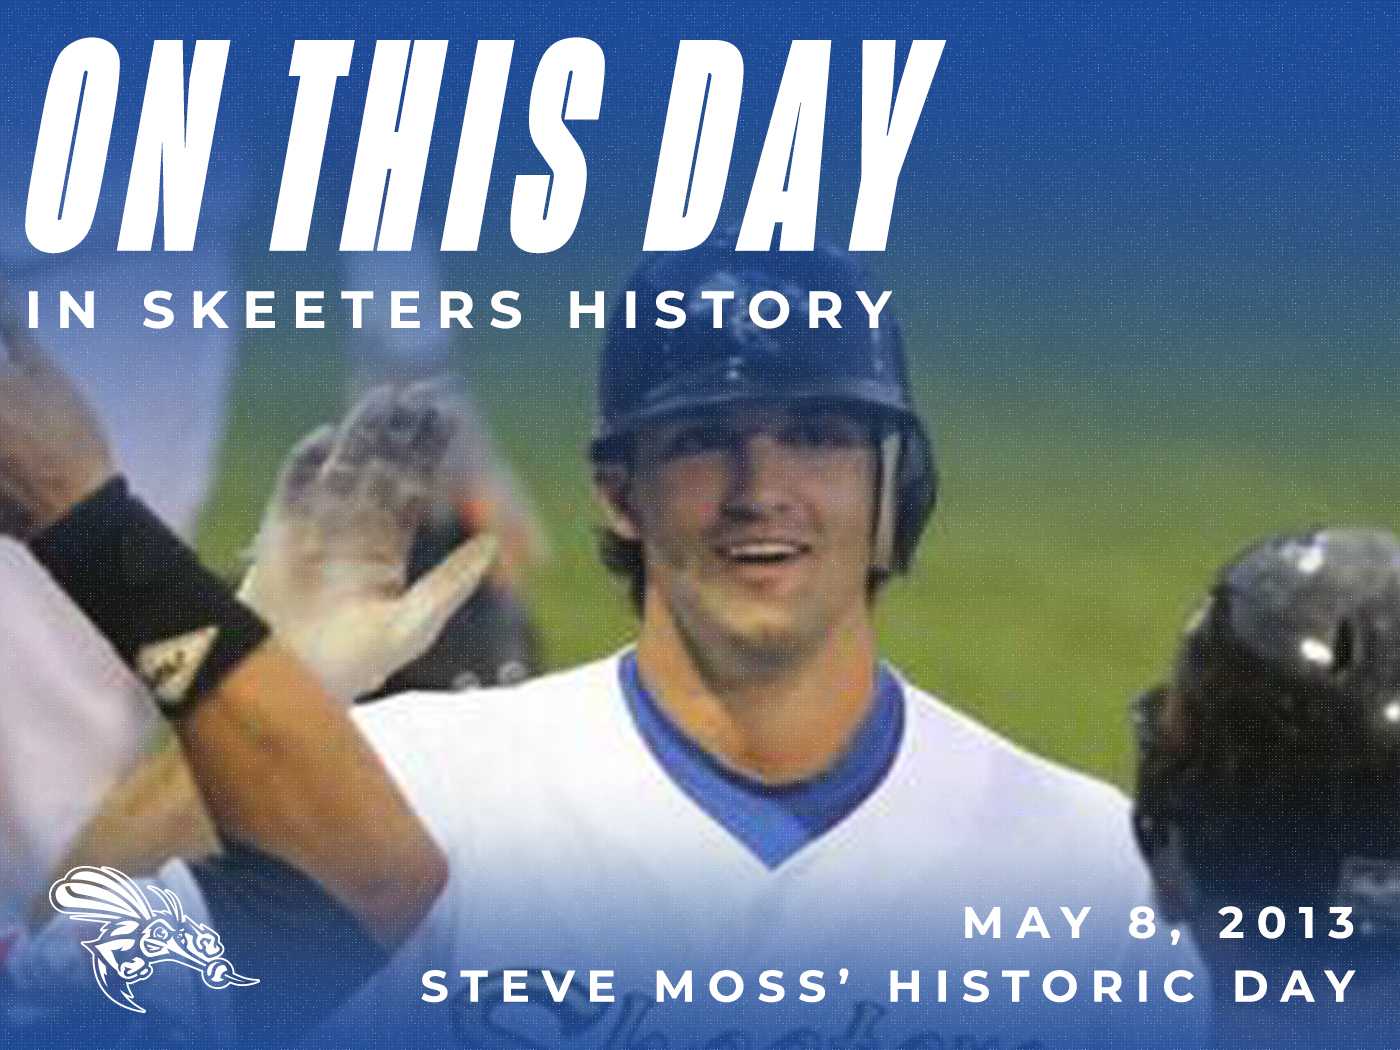 On This Day in Skeeters History: May 8